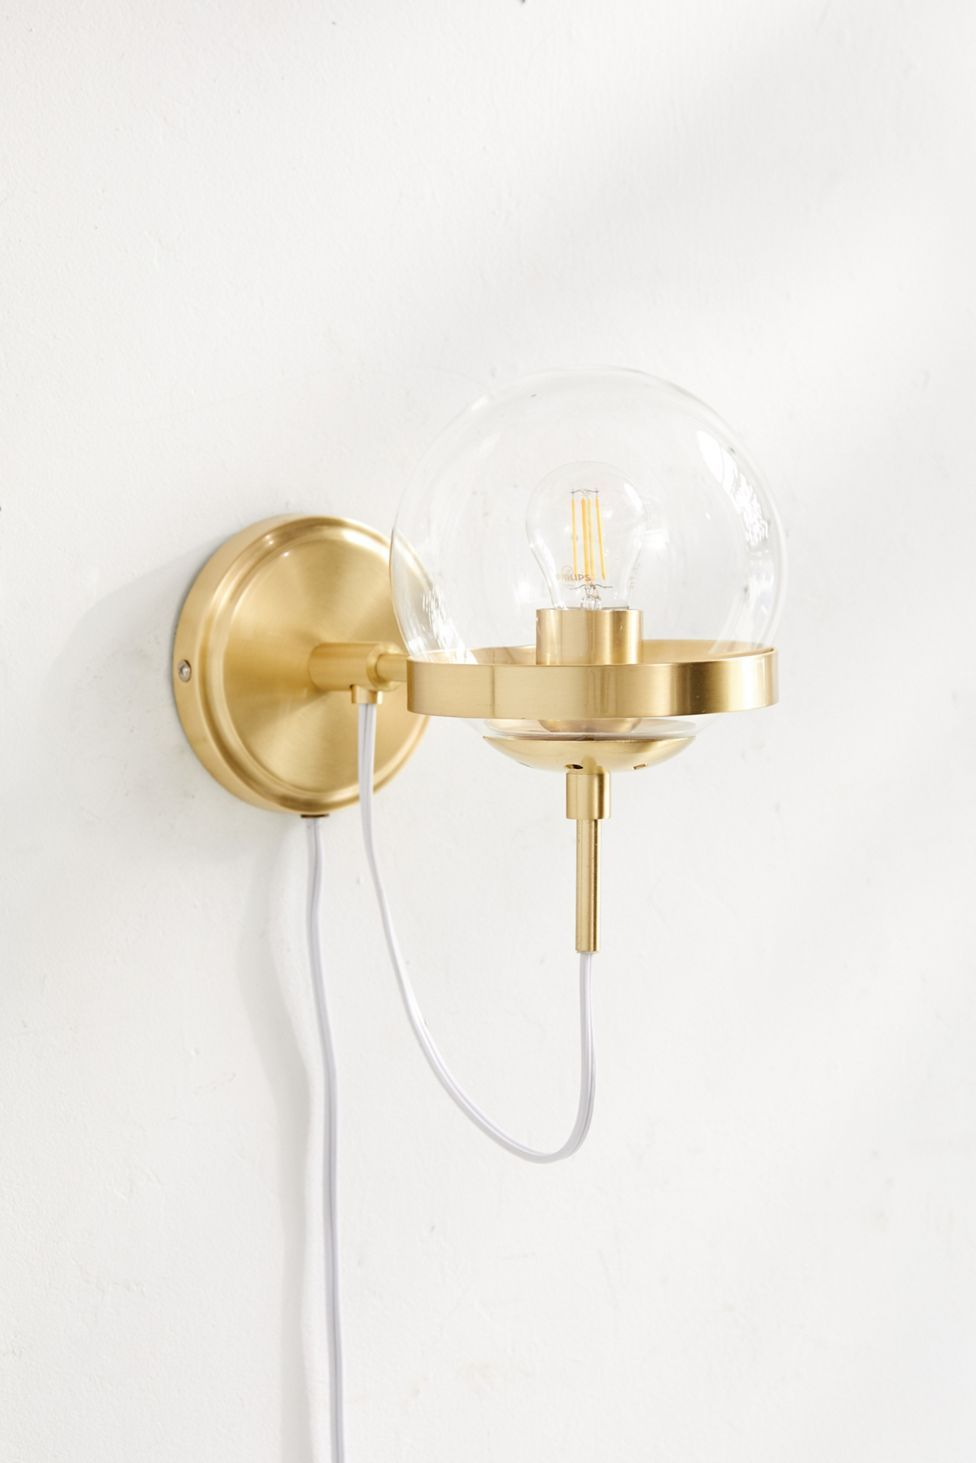 Giuliana Globe Sconce Urban Outfitters Globe Sconce Sconces Interior Wall Sconces